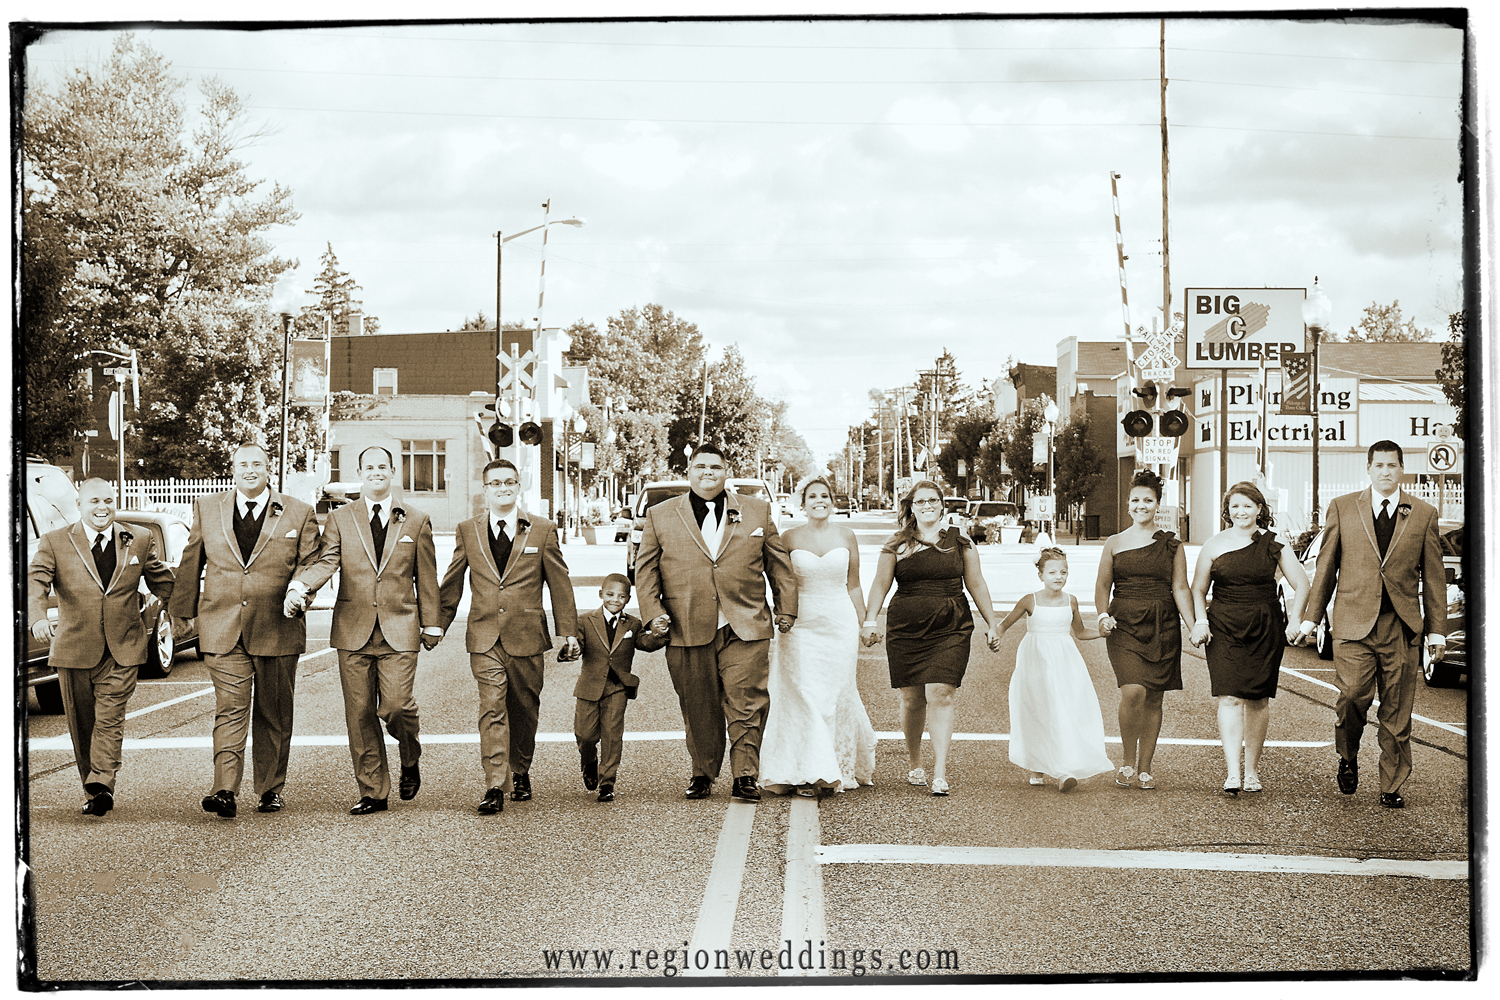 The wedding party takes over the streets in Three Oaks, Michigan.